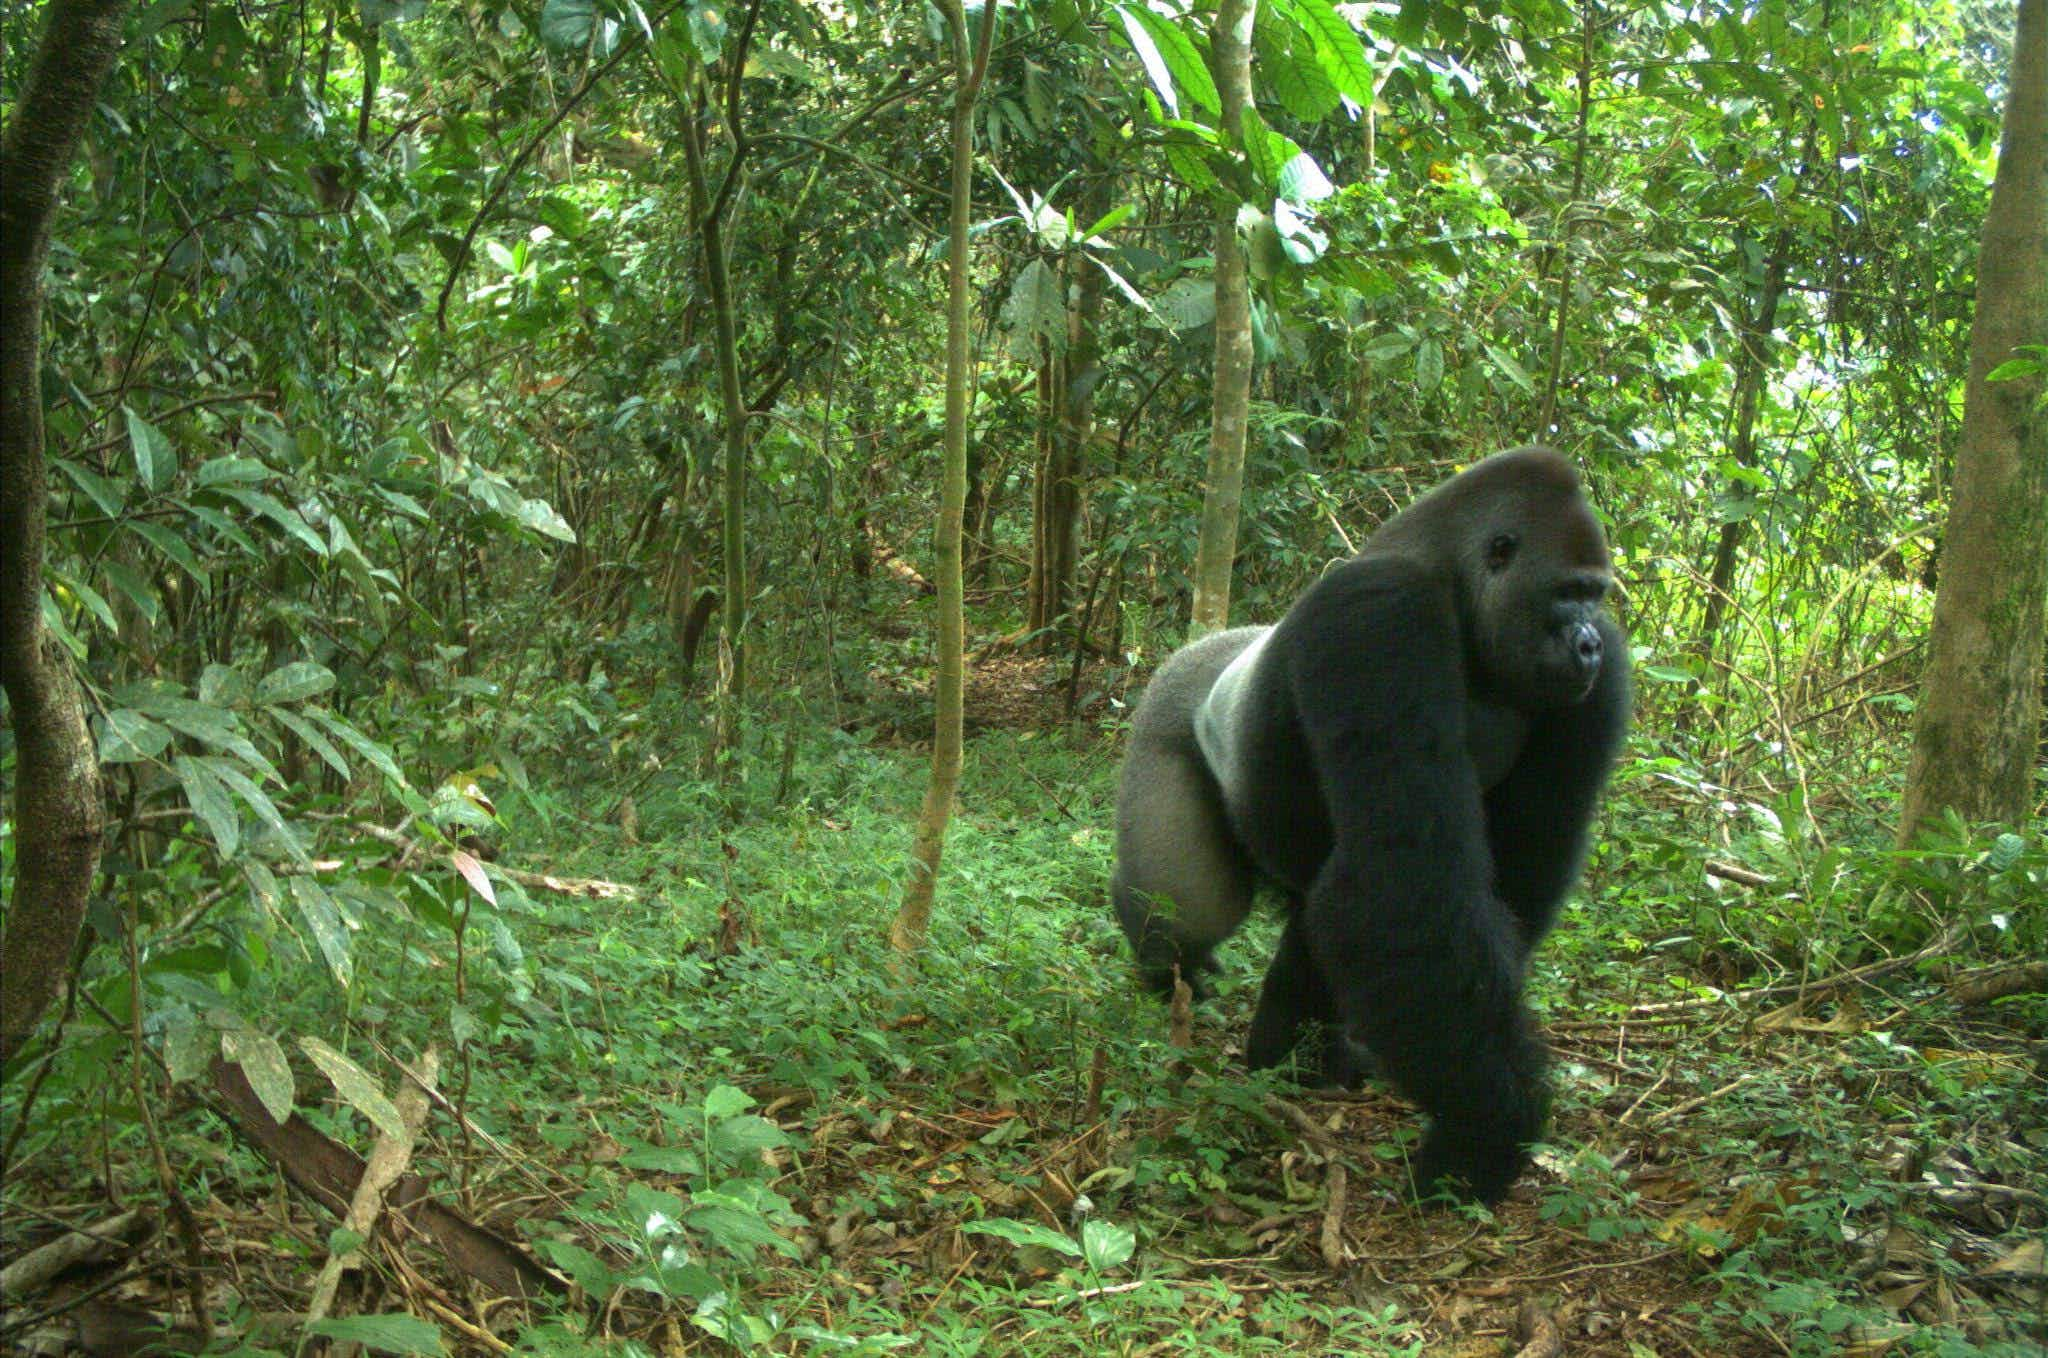 The world's rarest gorilla is seeking a mate to start a family